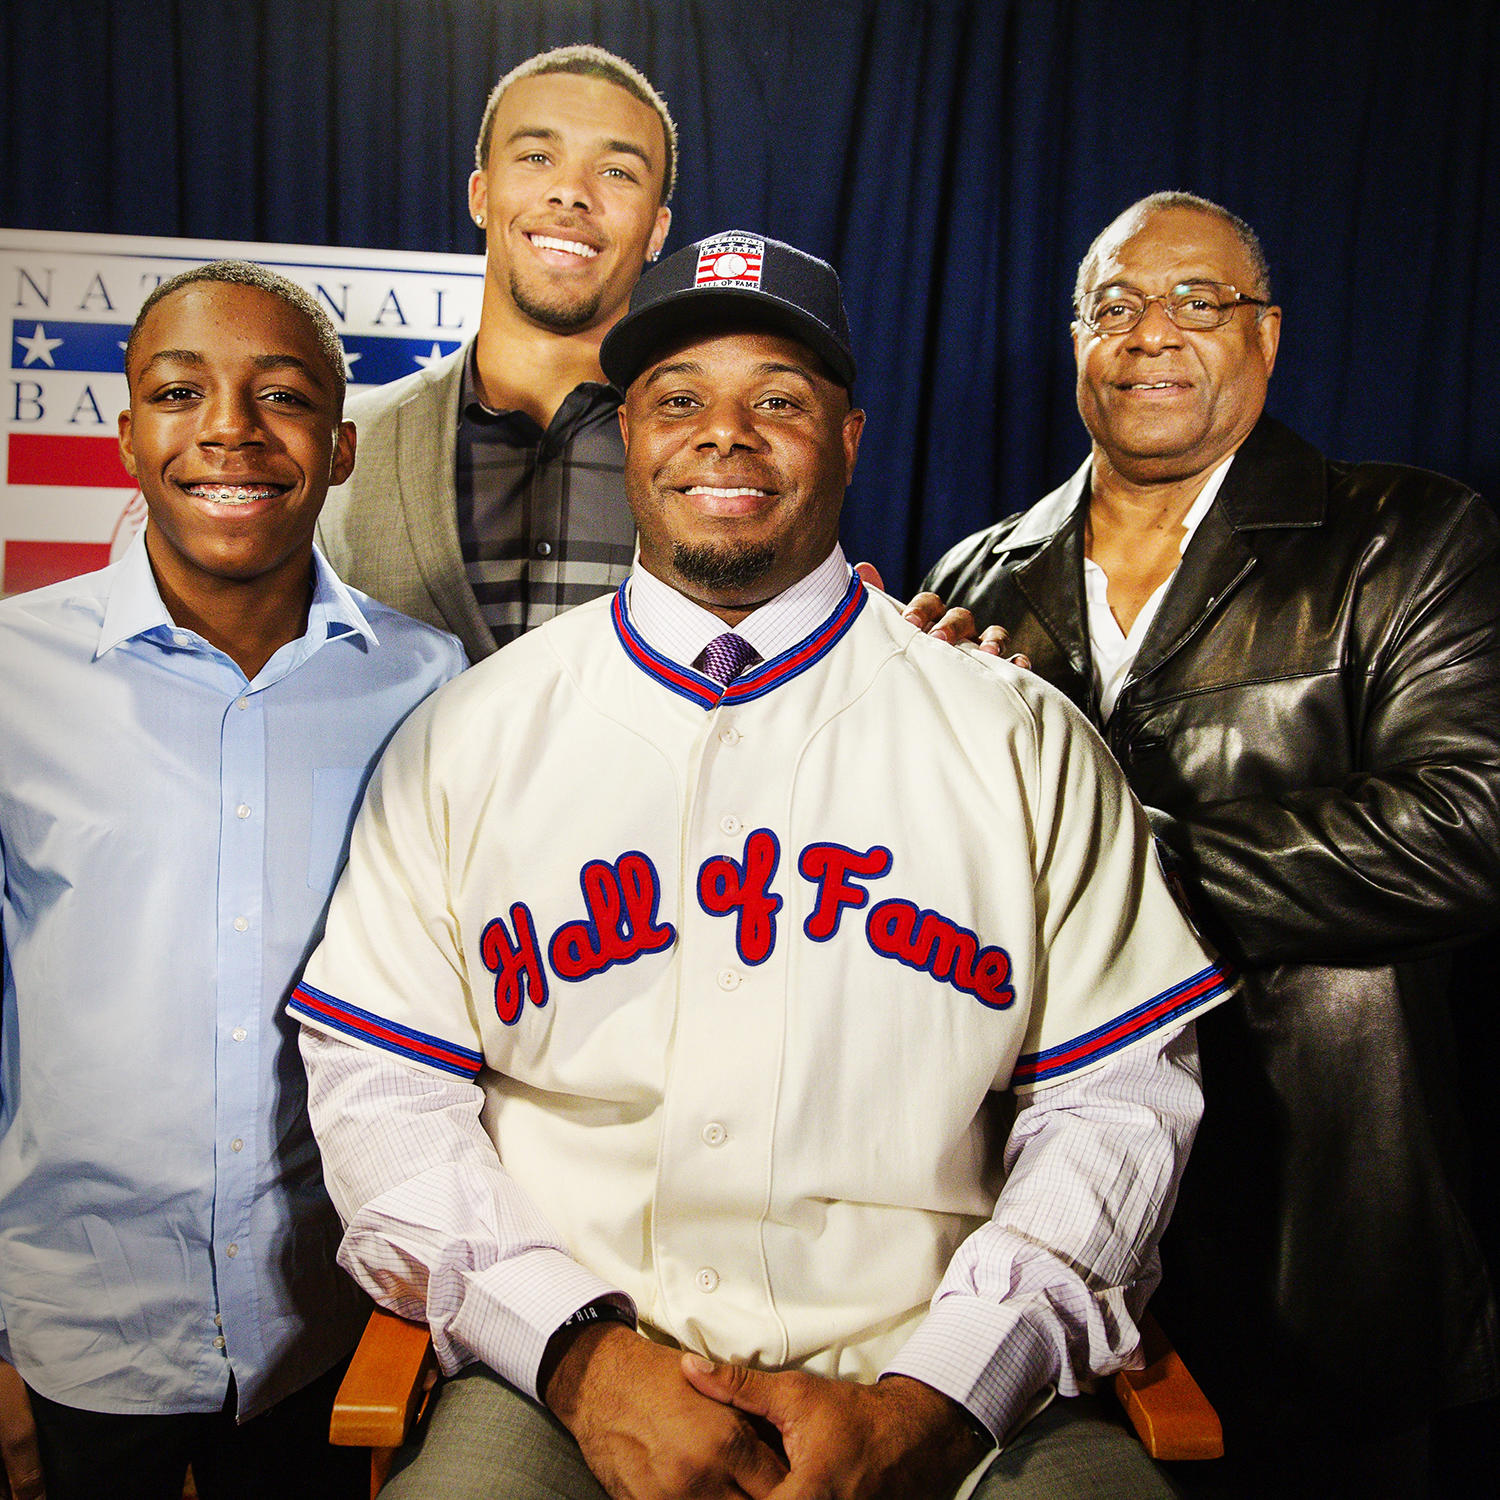 Ken Griffey Jr. is surrounded by his family, including his father, Ken Griffey Sr. (right), and sons Tevin (left) and Trey following his election to the Baseball Hall of Fame in January. (Jean Fruth/National Baseball Hall of Fame)